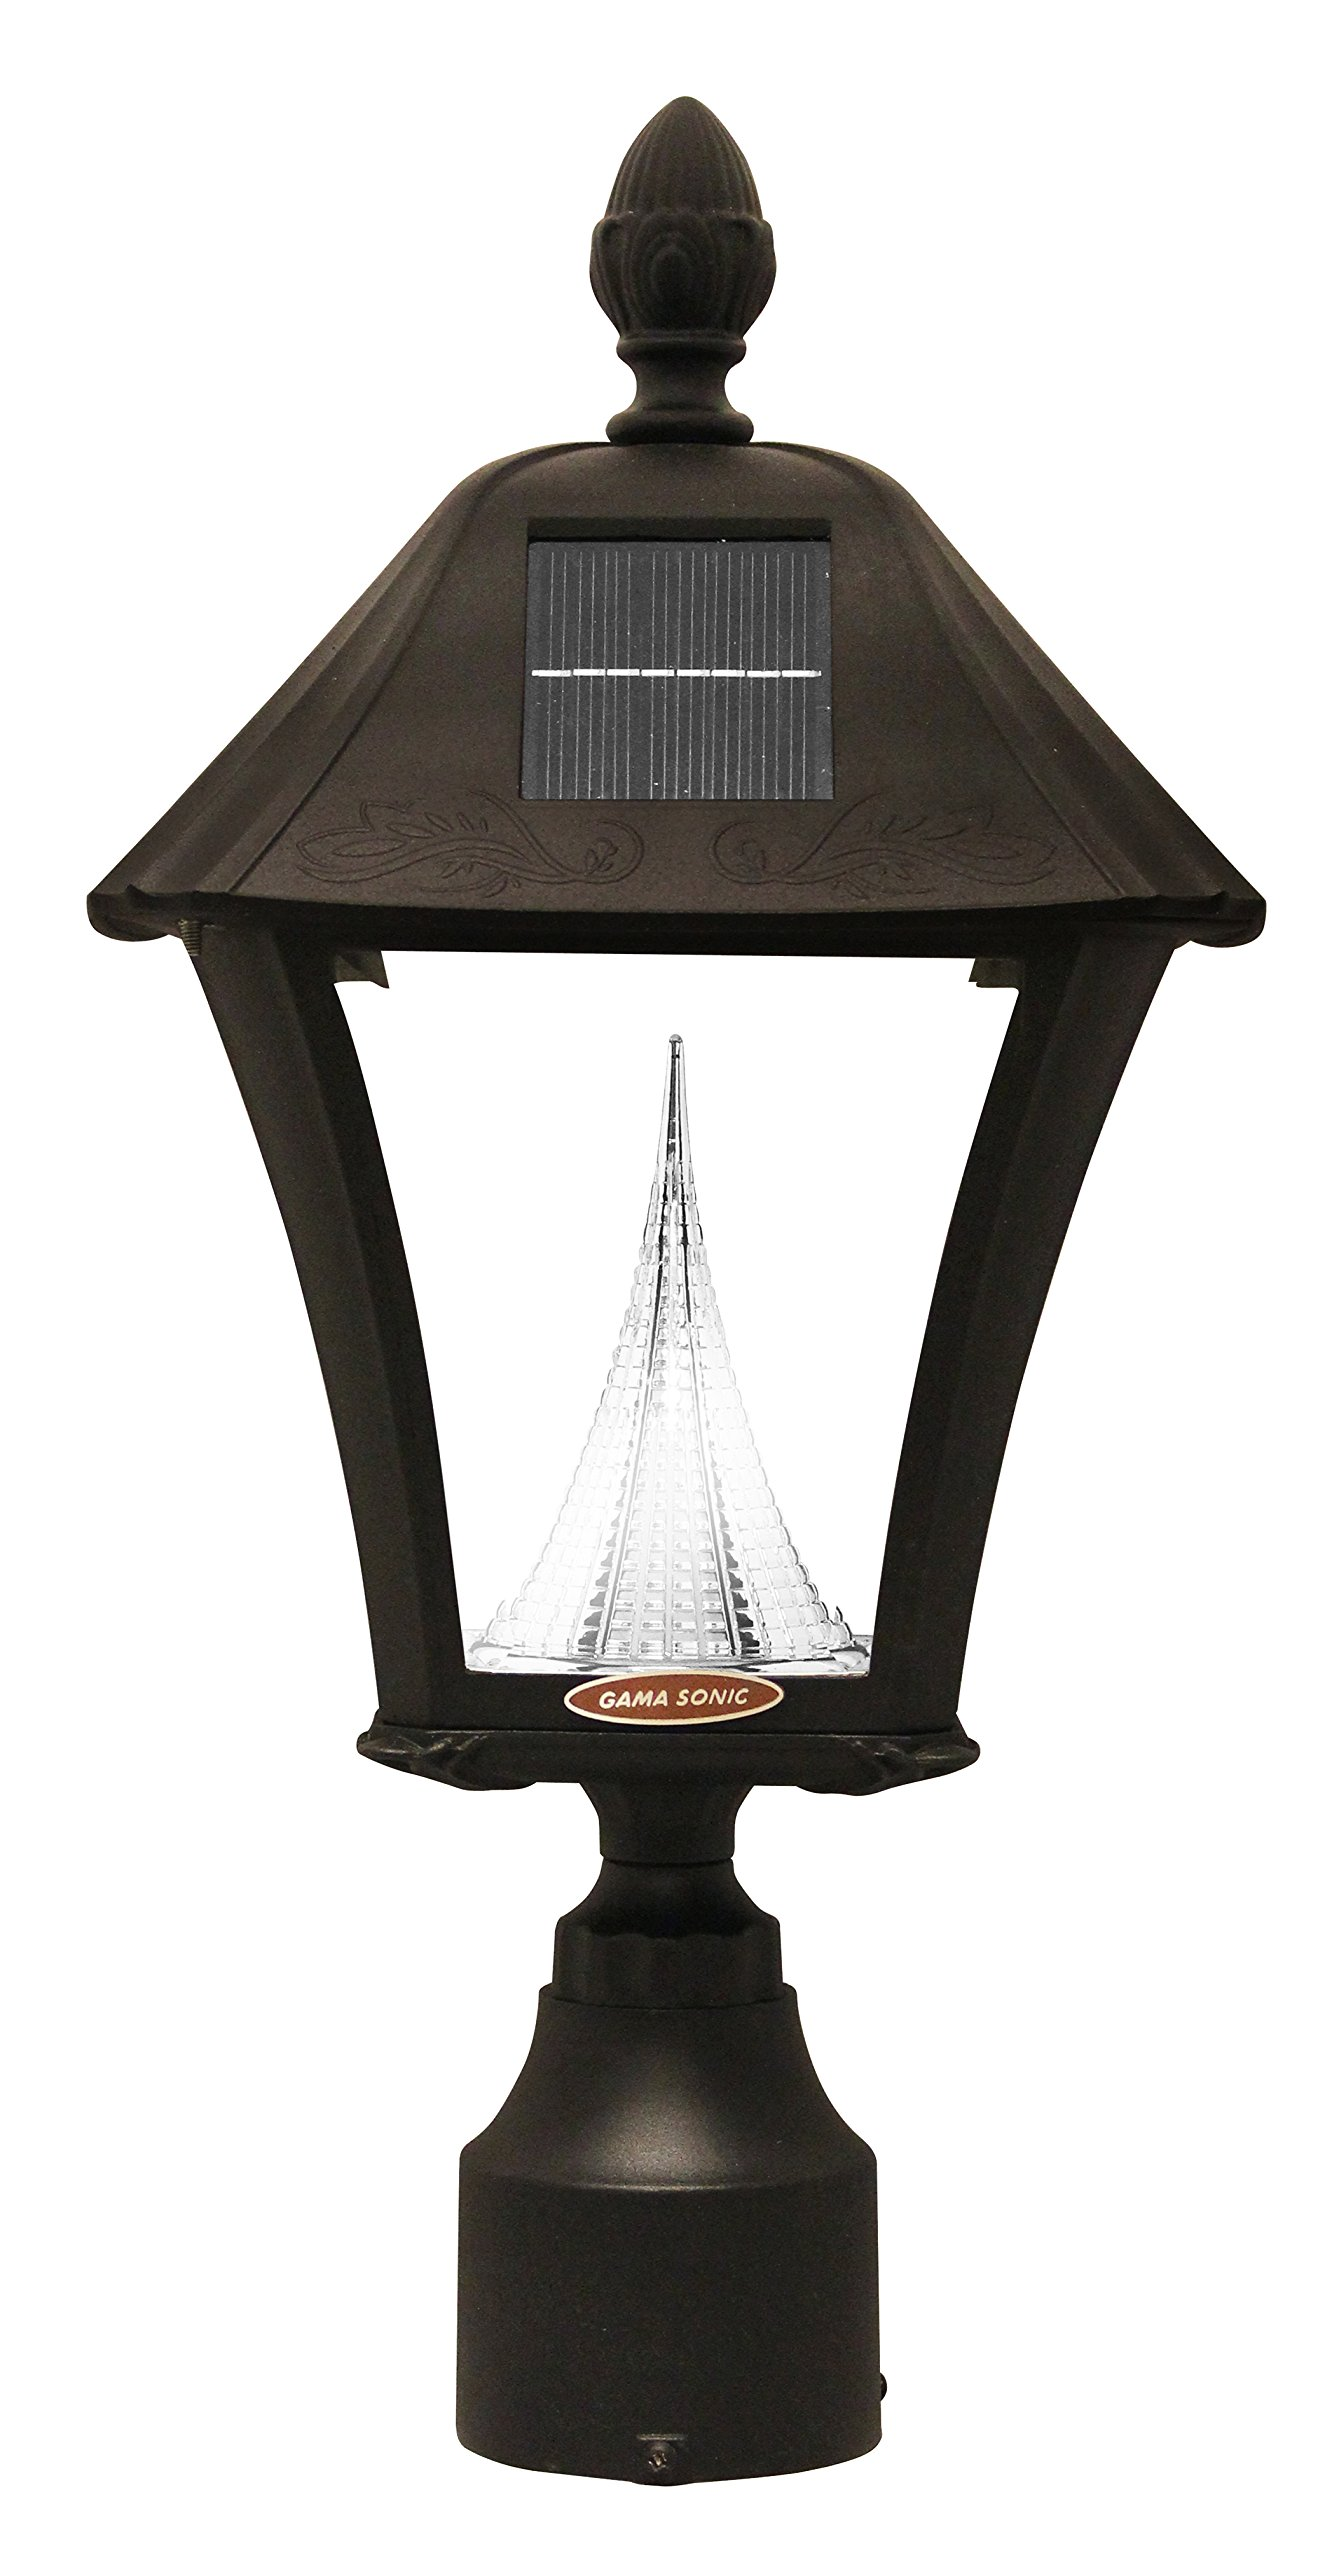 Gama Sonic Baytown Solar Outdoor LED Light Fixture, Pole/Post/Wall Mount Kit, Black Finish #GS-106FPW-B by Gama Sonic (Image #2)